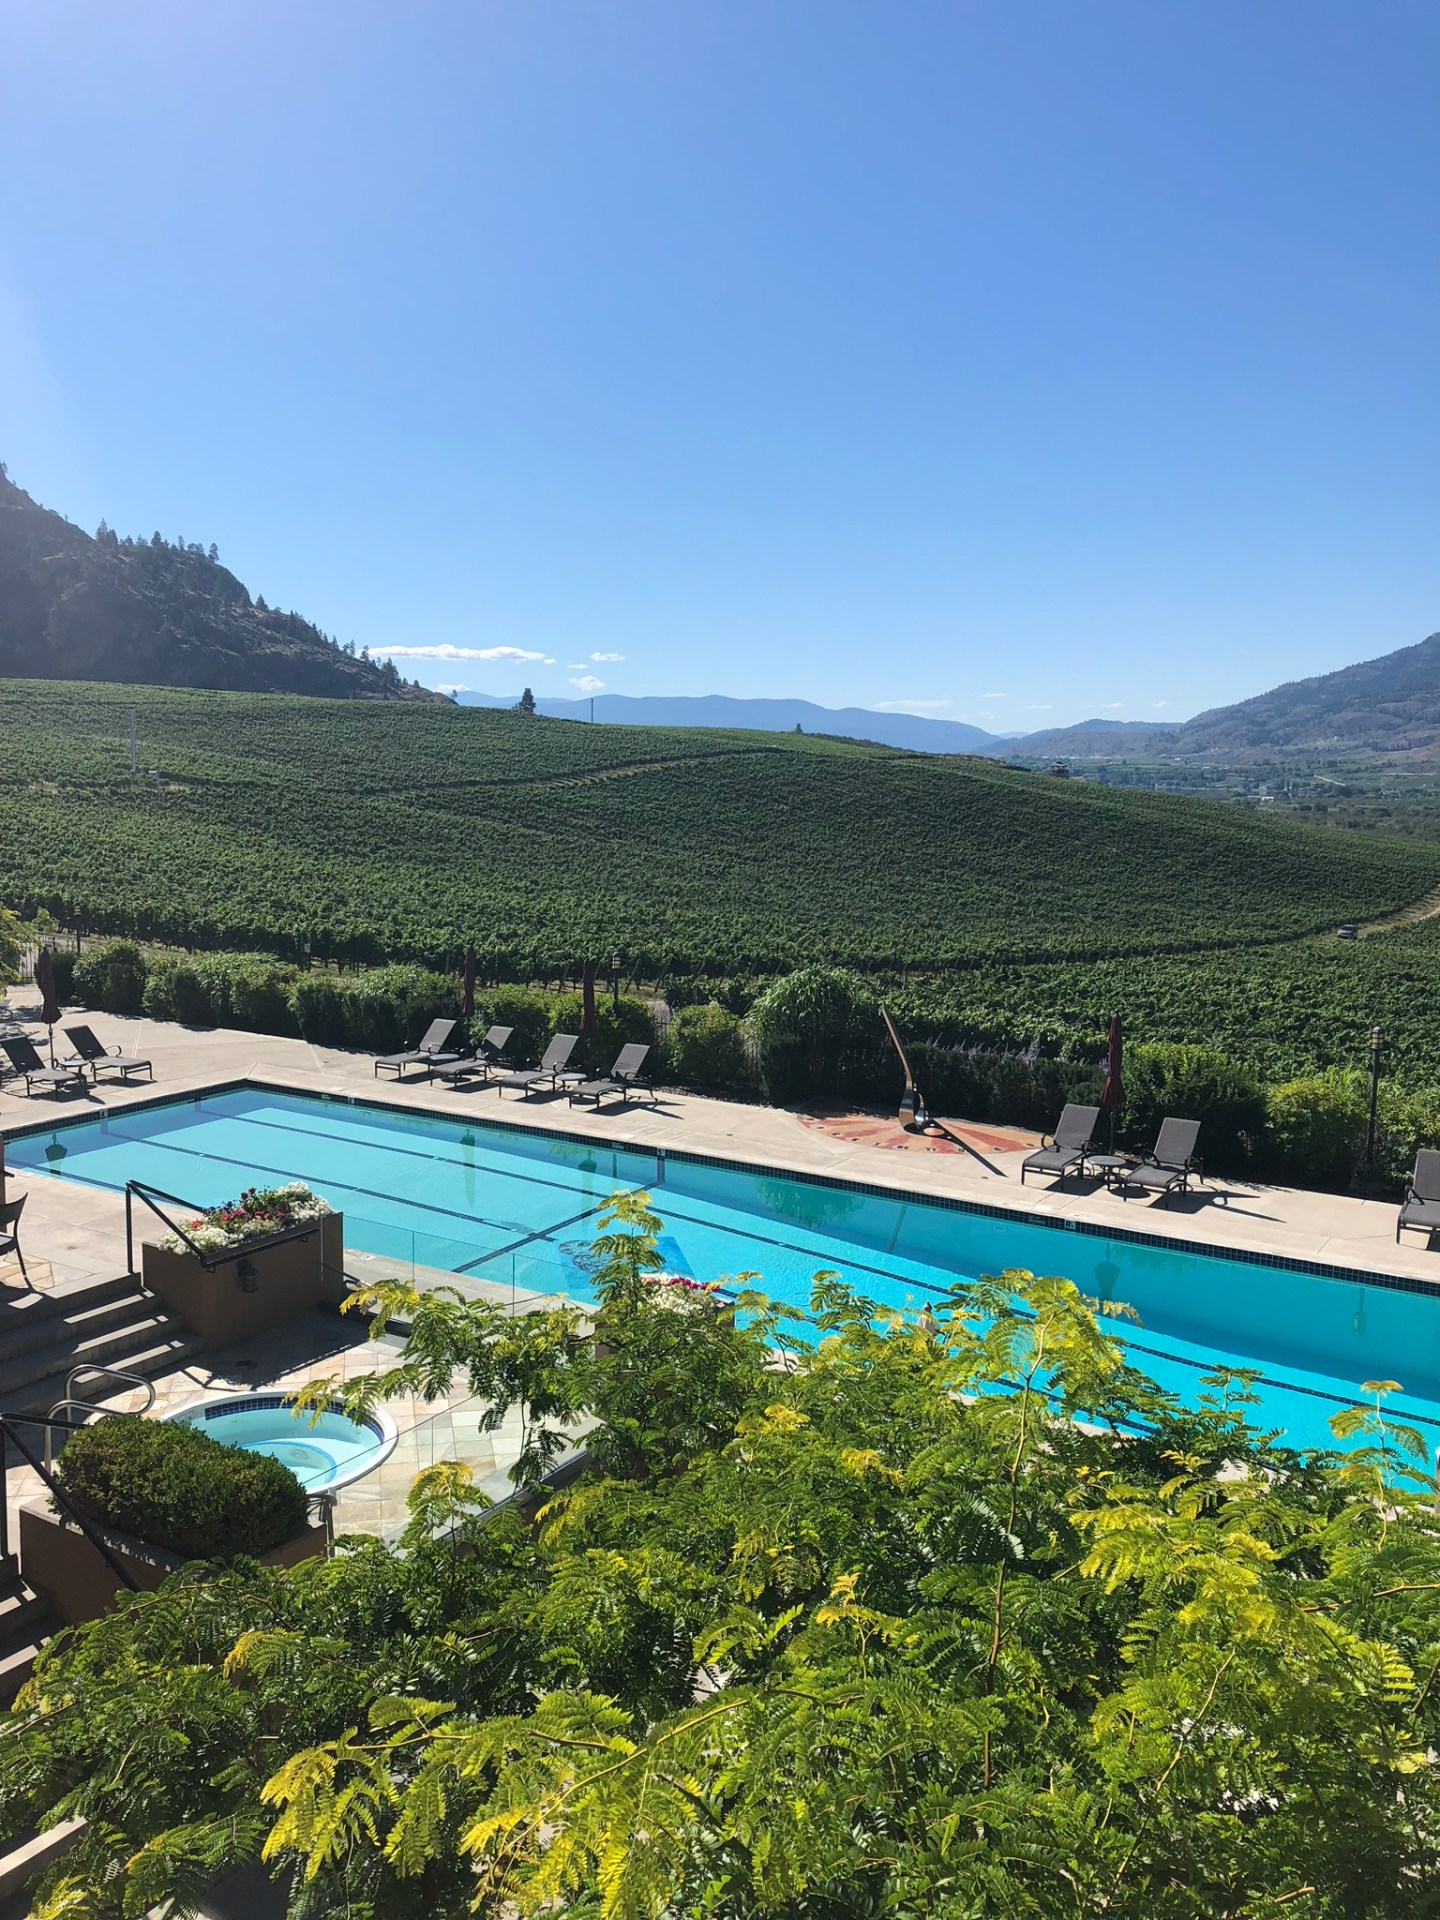 Oliver and Osoyoos: Visiting the Wineries